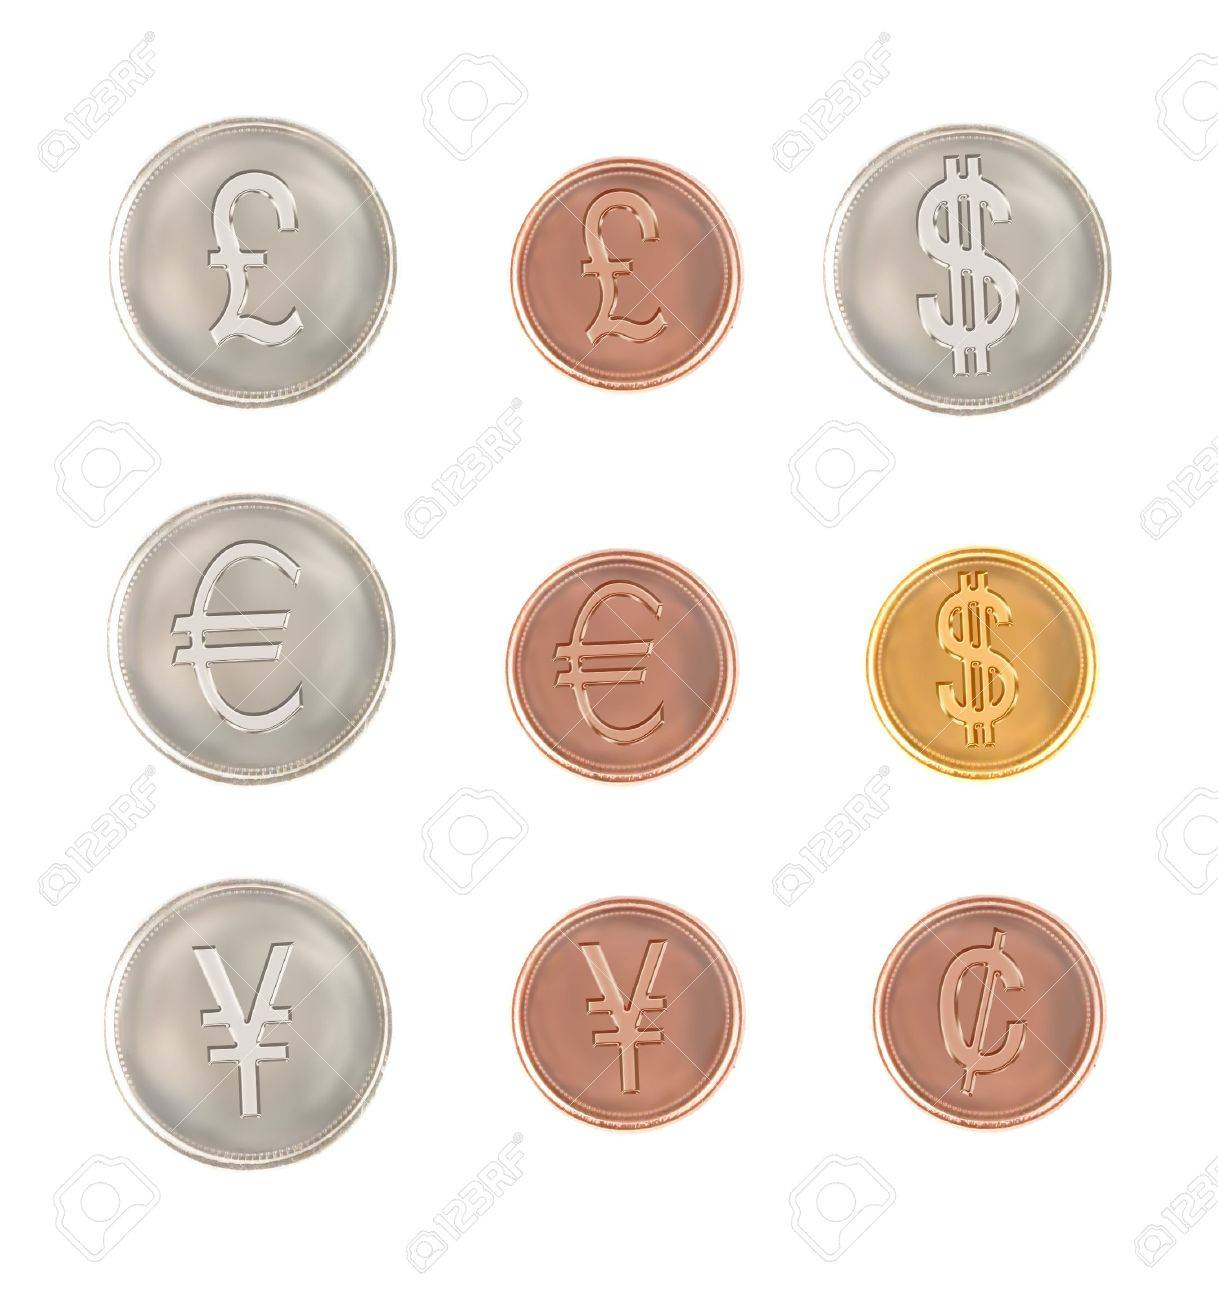 Currencies From Around The World Coins With The Symbol Of The